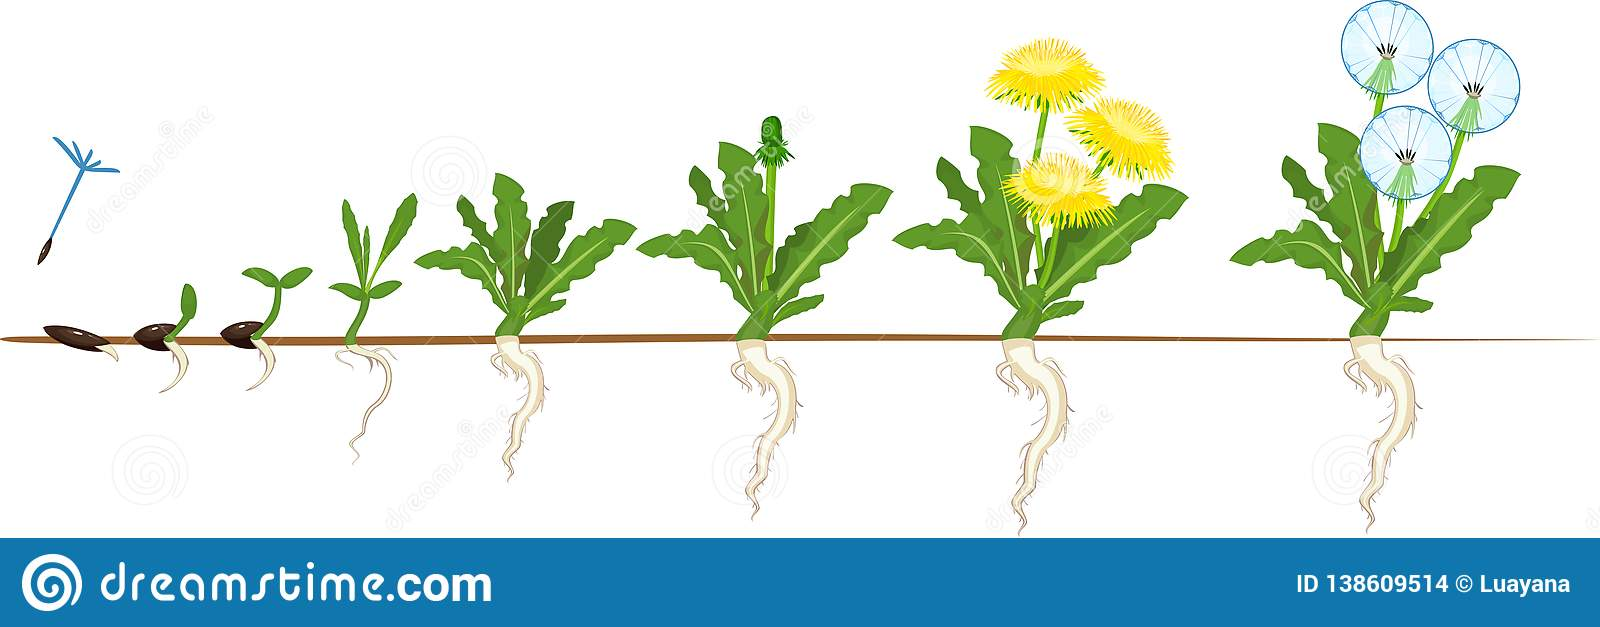 Taraxacum Cartoons  Illustrations  U0026 Vector Stock Images